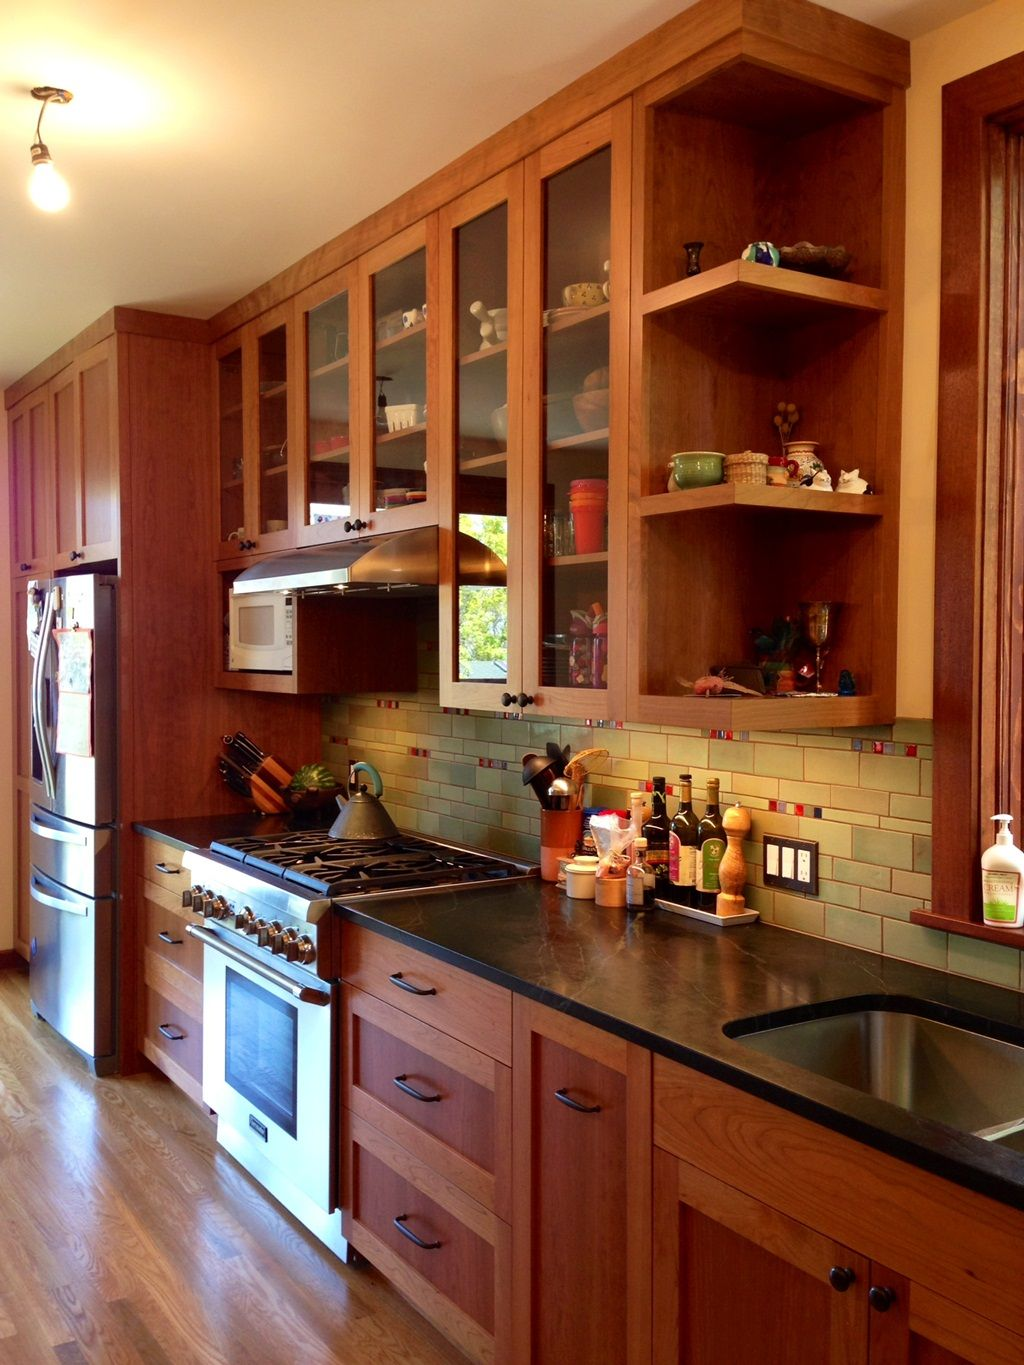 Mission Style Kitchens With A Historical Aesthetic Beauty And Functionality Craftsman Kitchen Mission Style Kitchens Kitchen Backsplash Designs